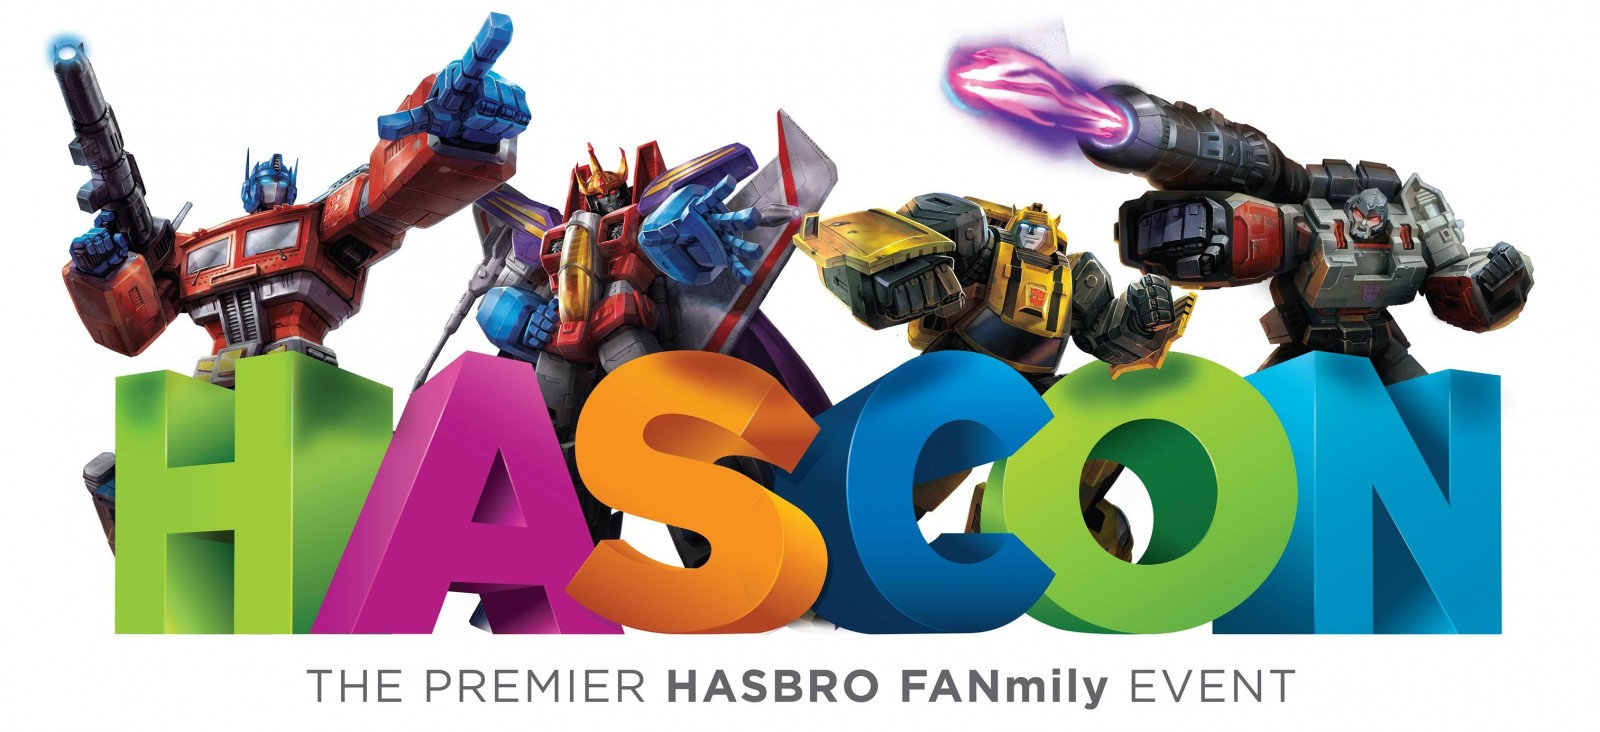 Transformers News: HASCON Tickets Up for Grabs via Groupon for 50% Off!